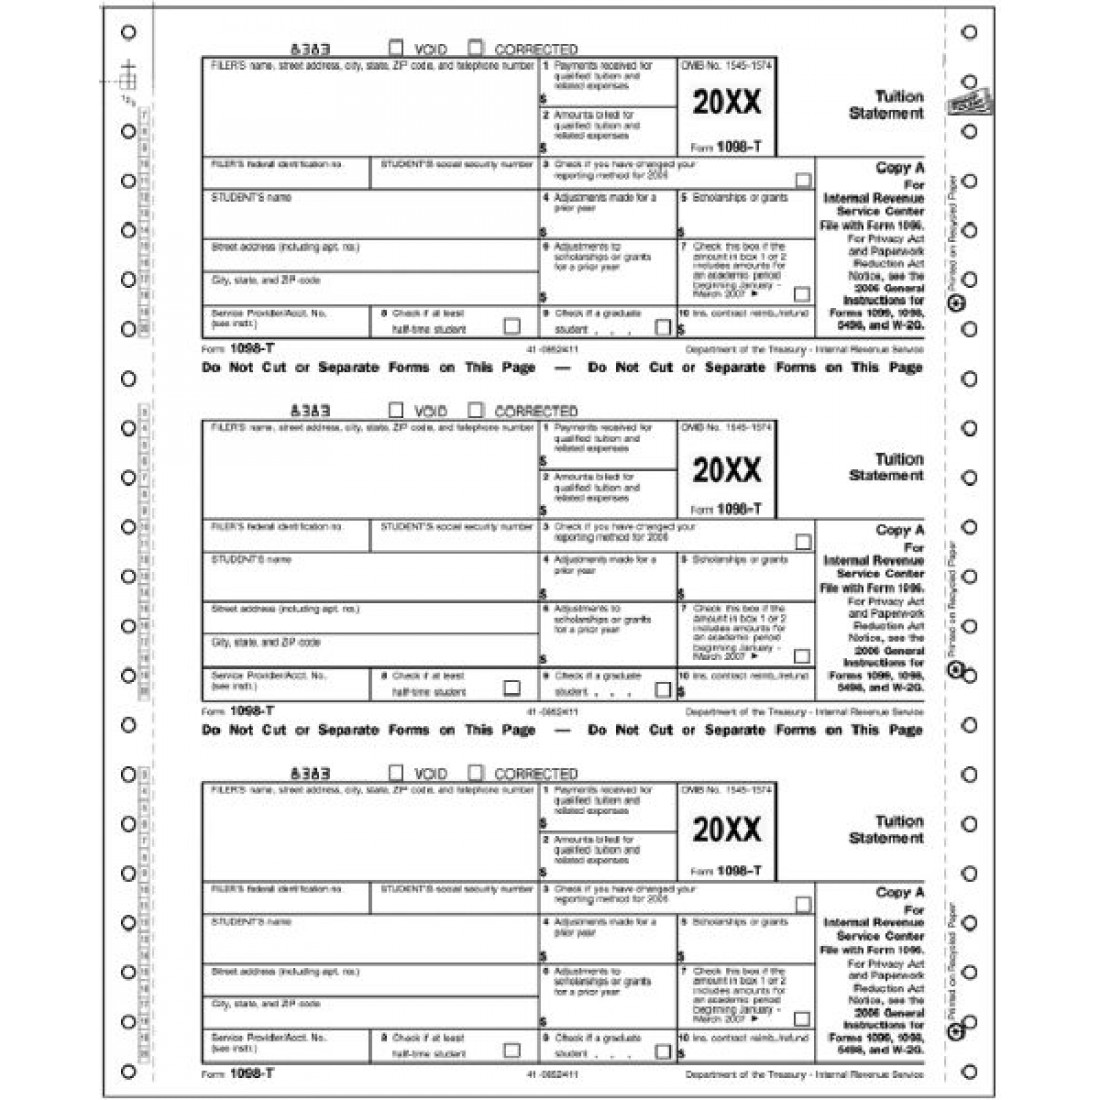 Continuous 1098 T Tax Form Federal Copy A   Free Shipping